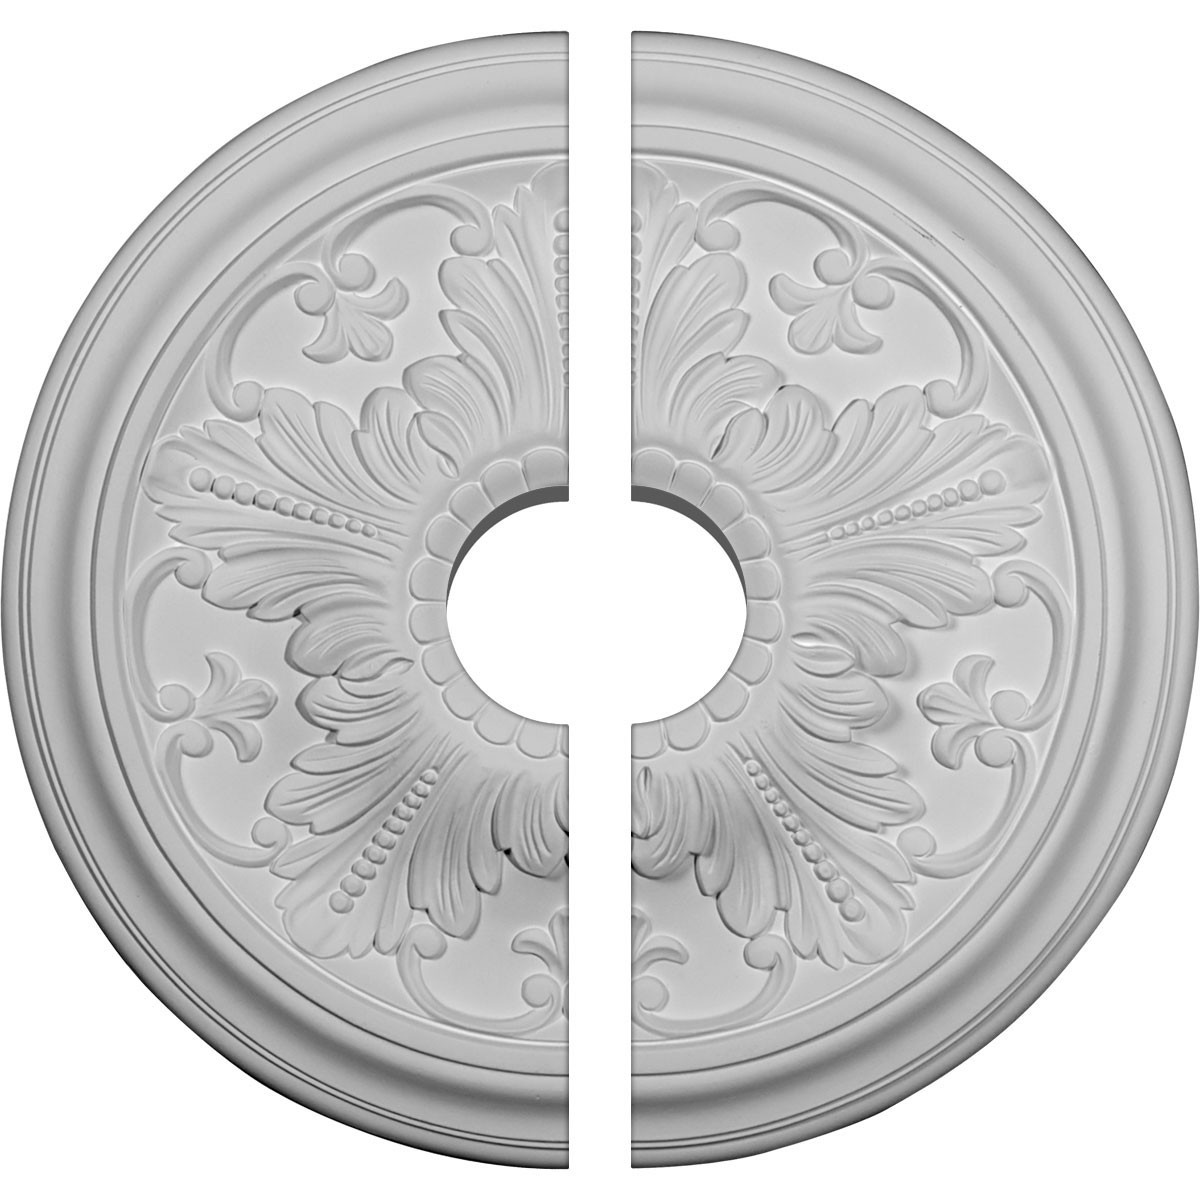 """EM-CM17VI2-03500 - 16 7/8""""OD x 3 1/2""""ID x 5/8""""P Vienna Ceiling Medallion, Two Piece (Fits Canopies up to 3 1/2"""")"""